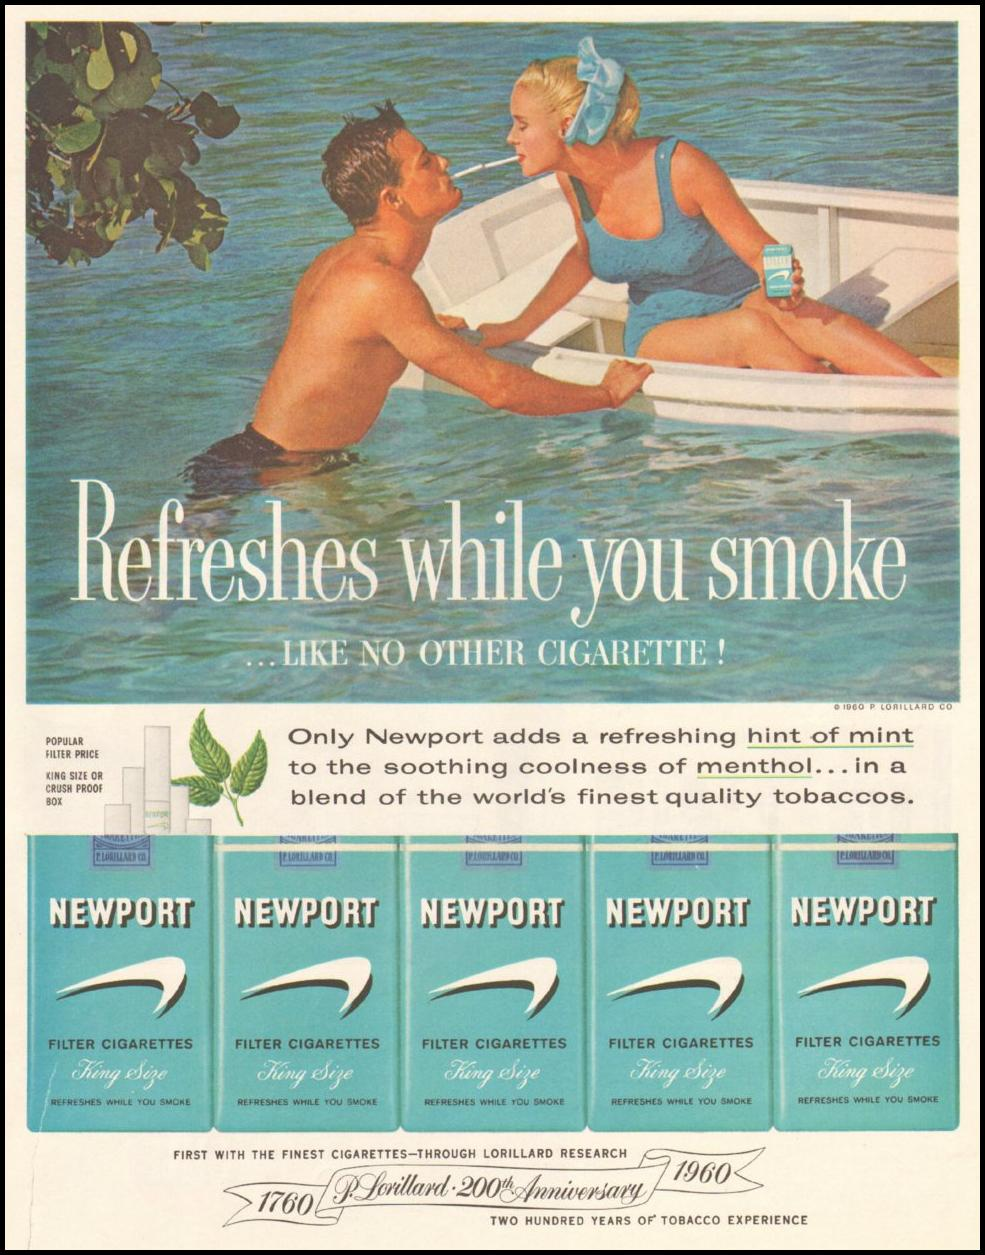 NEWPORT CIGARETTES SATURDAY EVENING POST 06/11/1960 p. 93